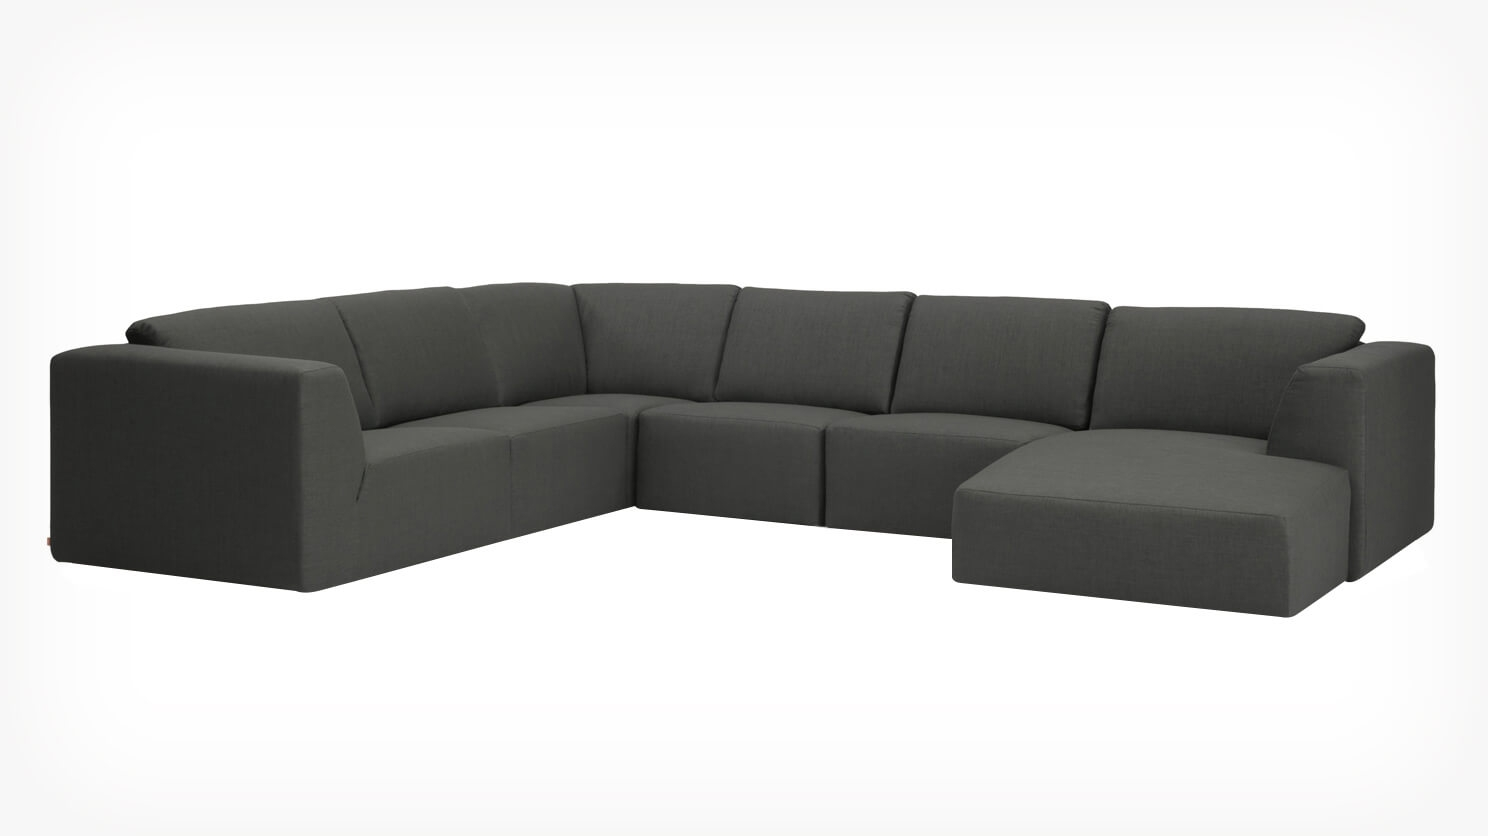 Morten 6 Piece Sectional Sofa With Chaise Fabric Eq3